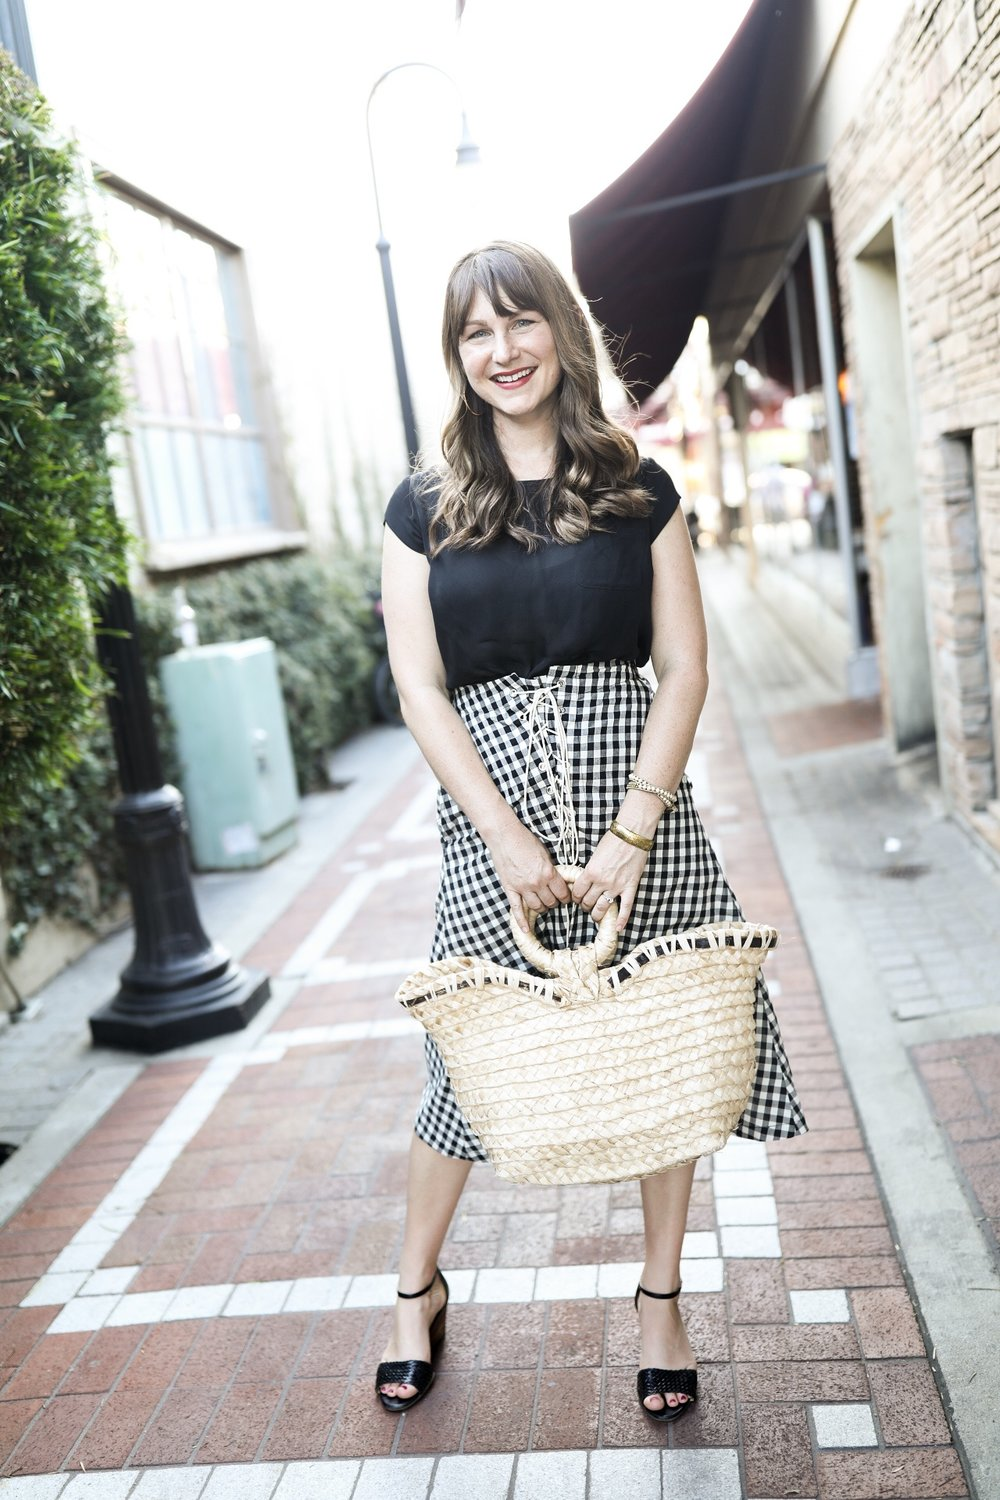 Indego Africa Bag (Fair Trade) and Black and White Gingham Eva Franco Skirt (Made in USA) | Birds of a Thread